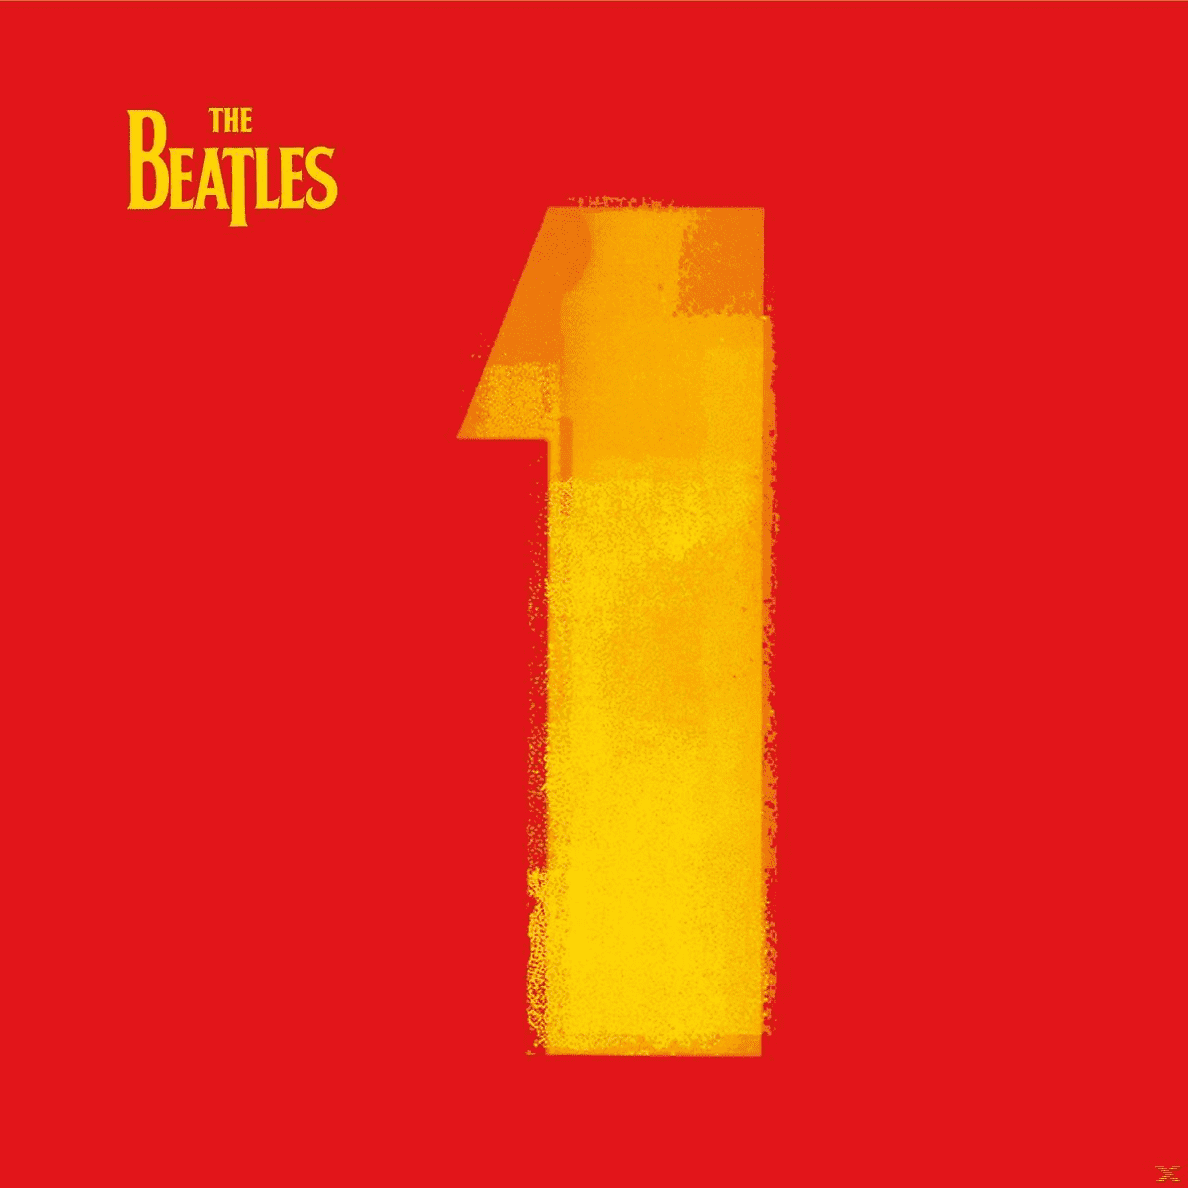 1 (2015 Remaster) The Beatles auf CD